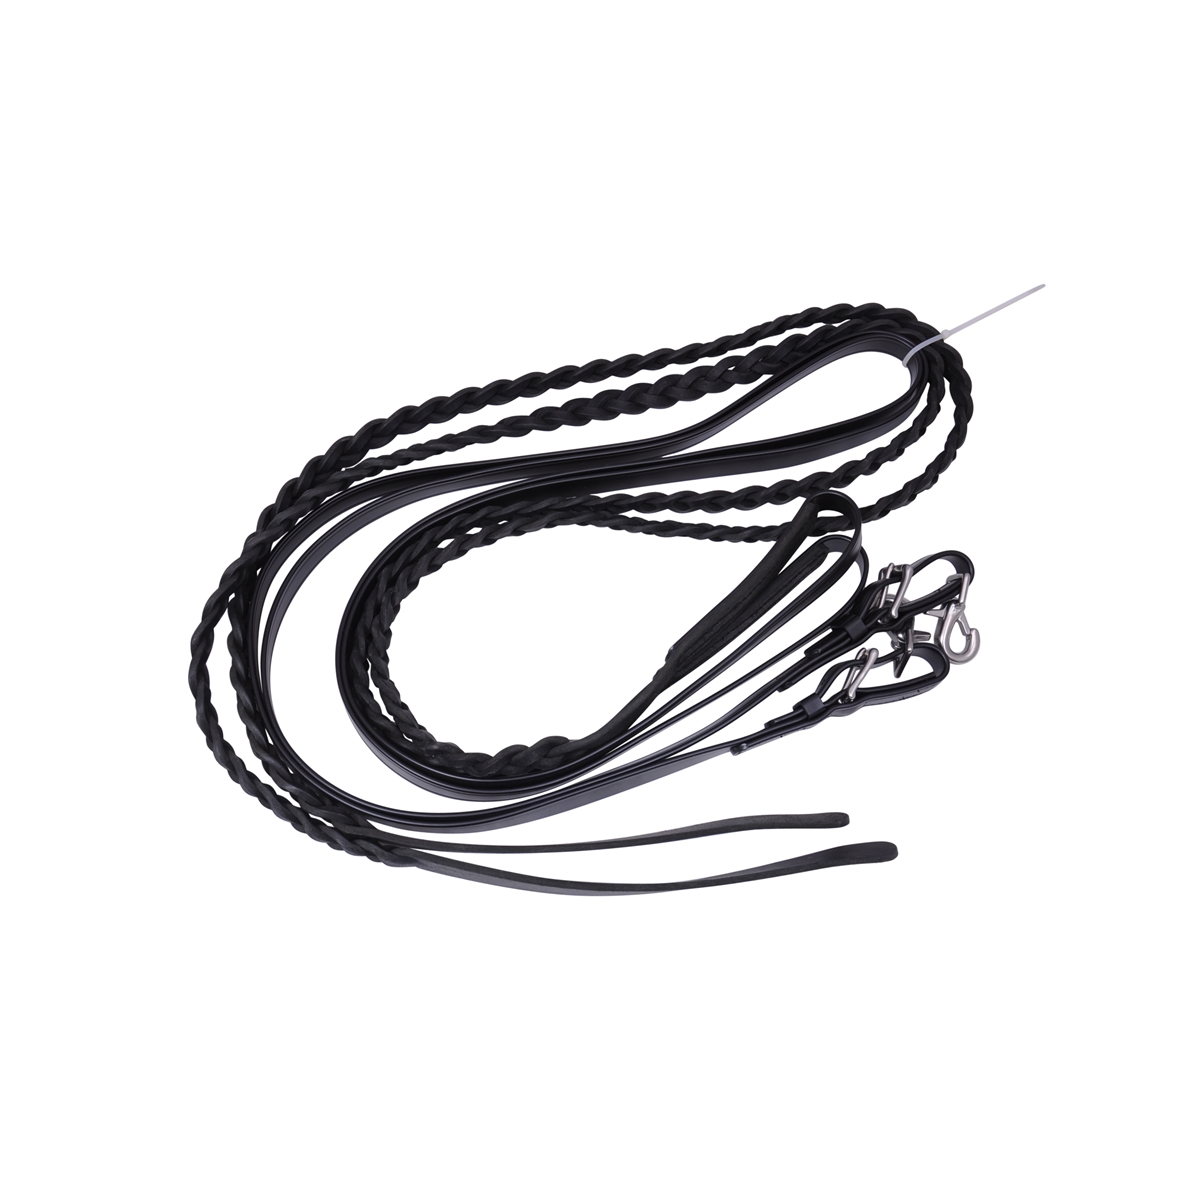 Three Plait Leather Driving Lines